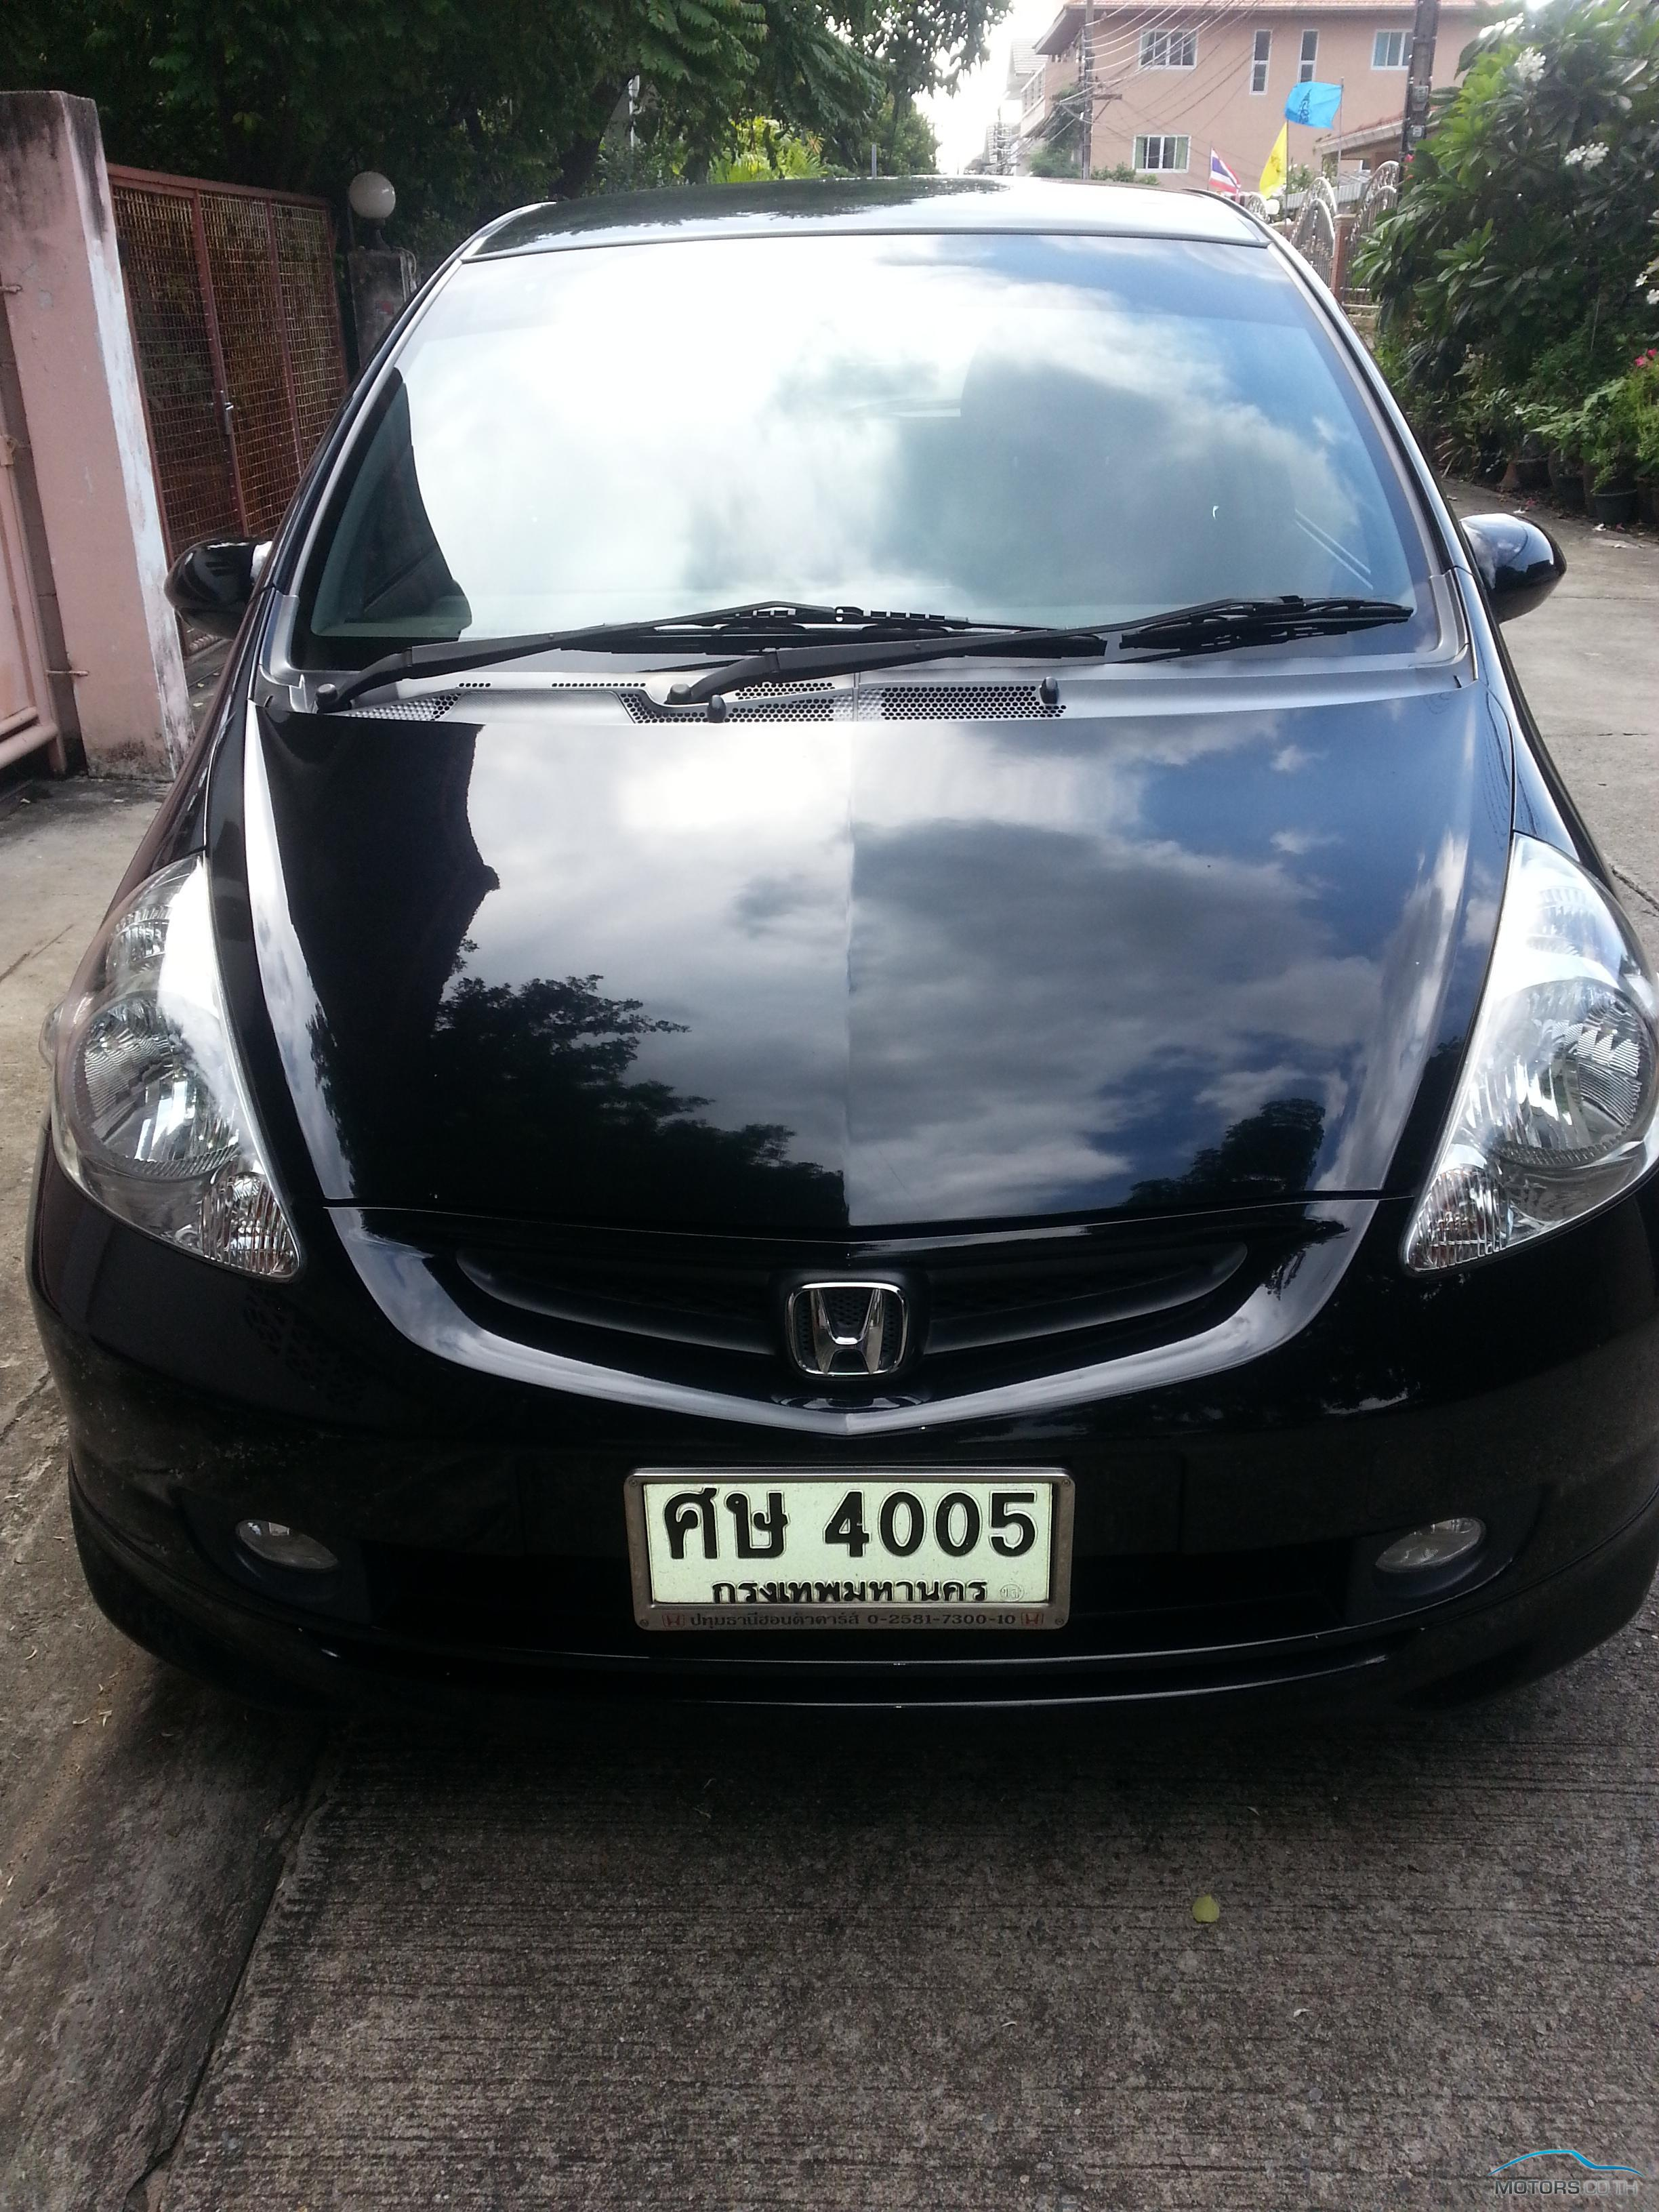 New, Used & Secondhand Cars HONDA JAZZ (2005)